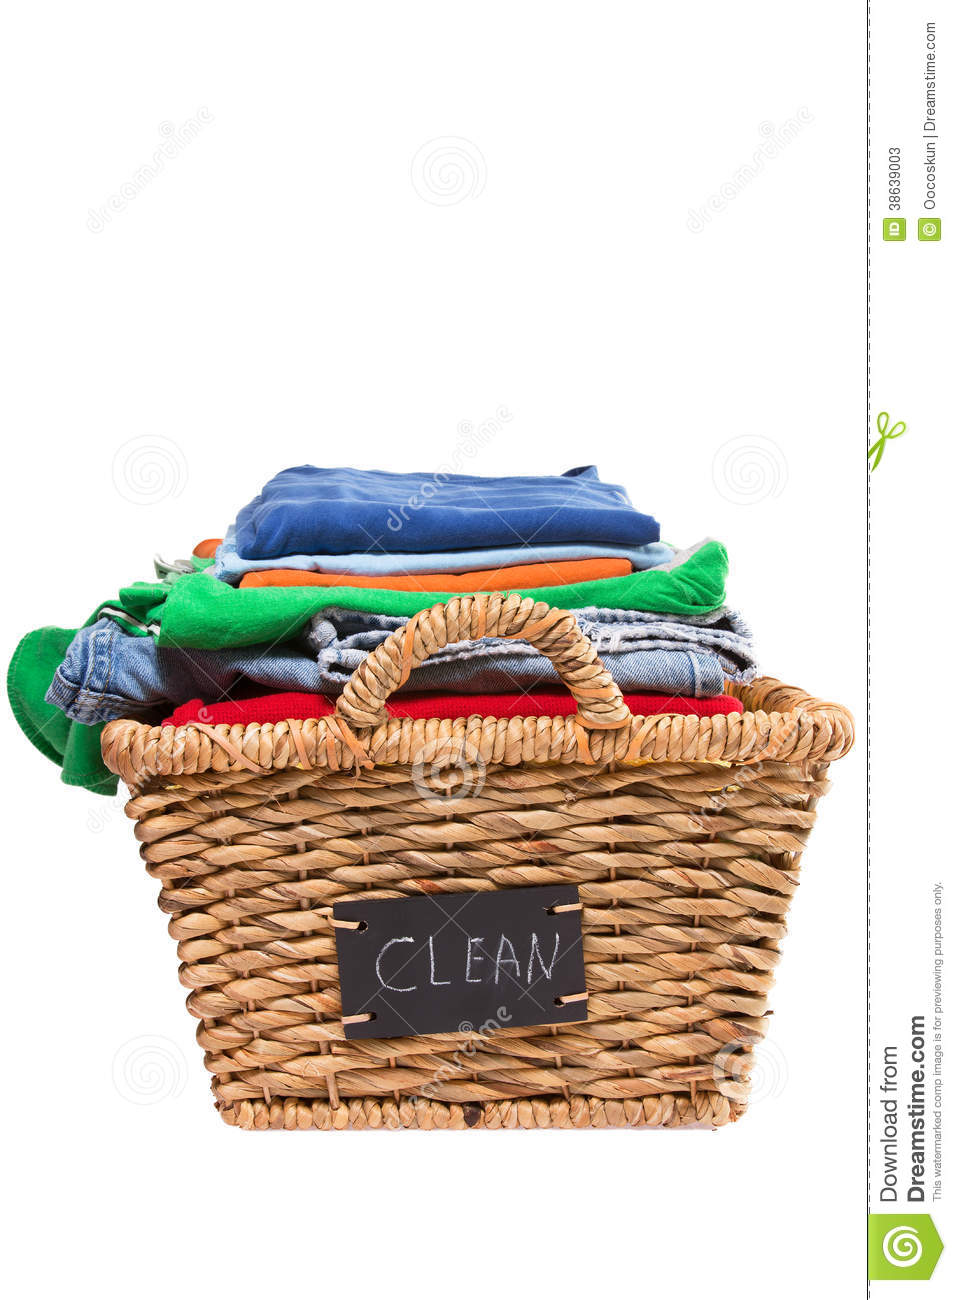 295 Laundry Basket free clipart.